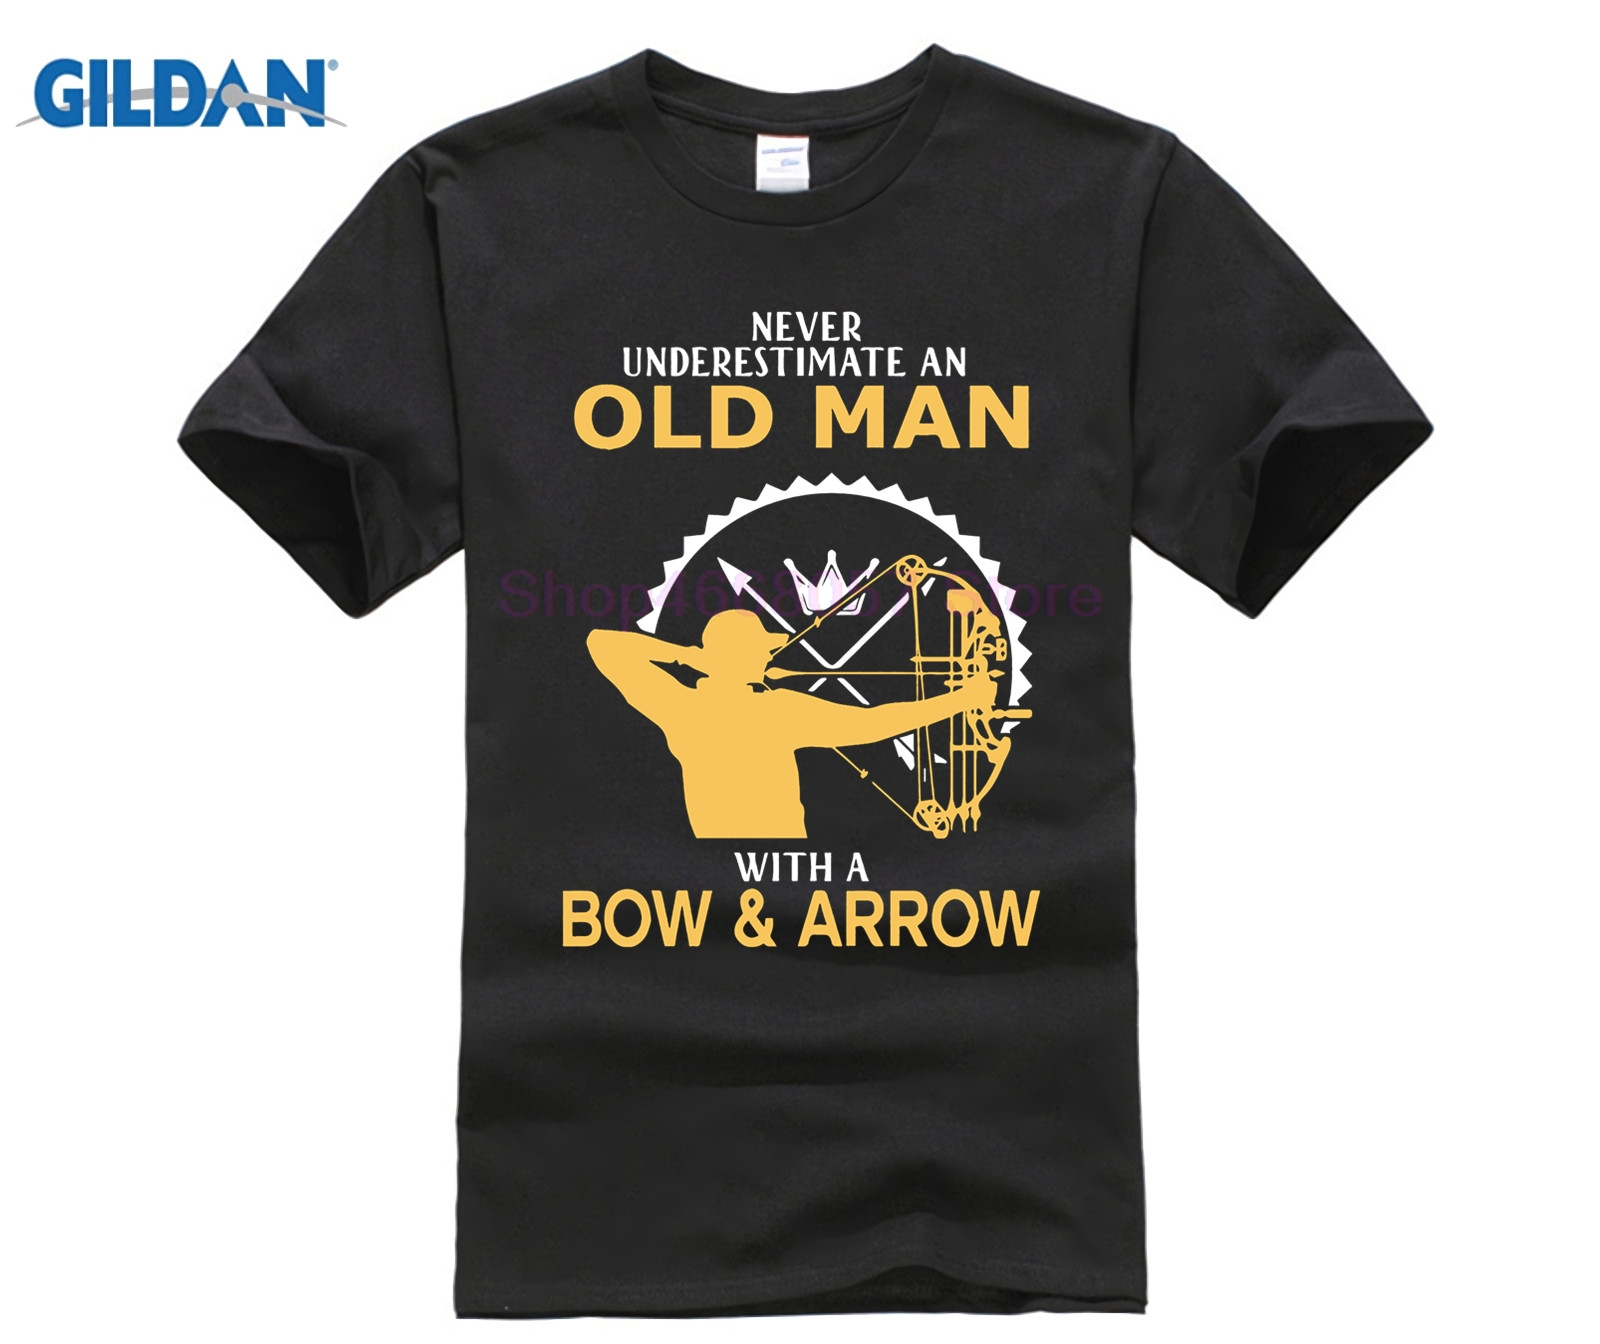 GILDAN Never Understimate an Old Man with a Bow and Arrow Tee Shirt